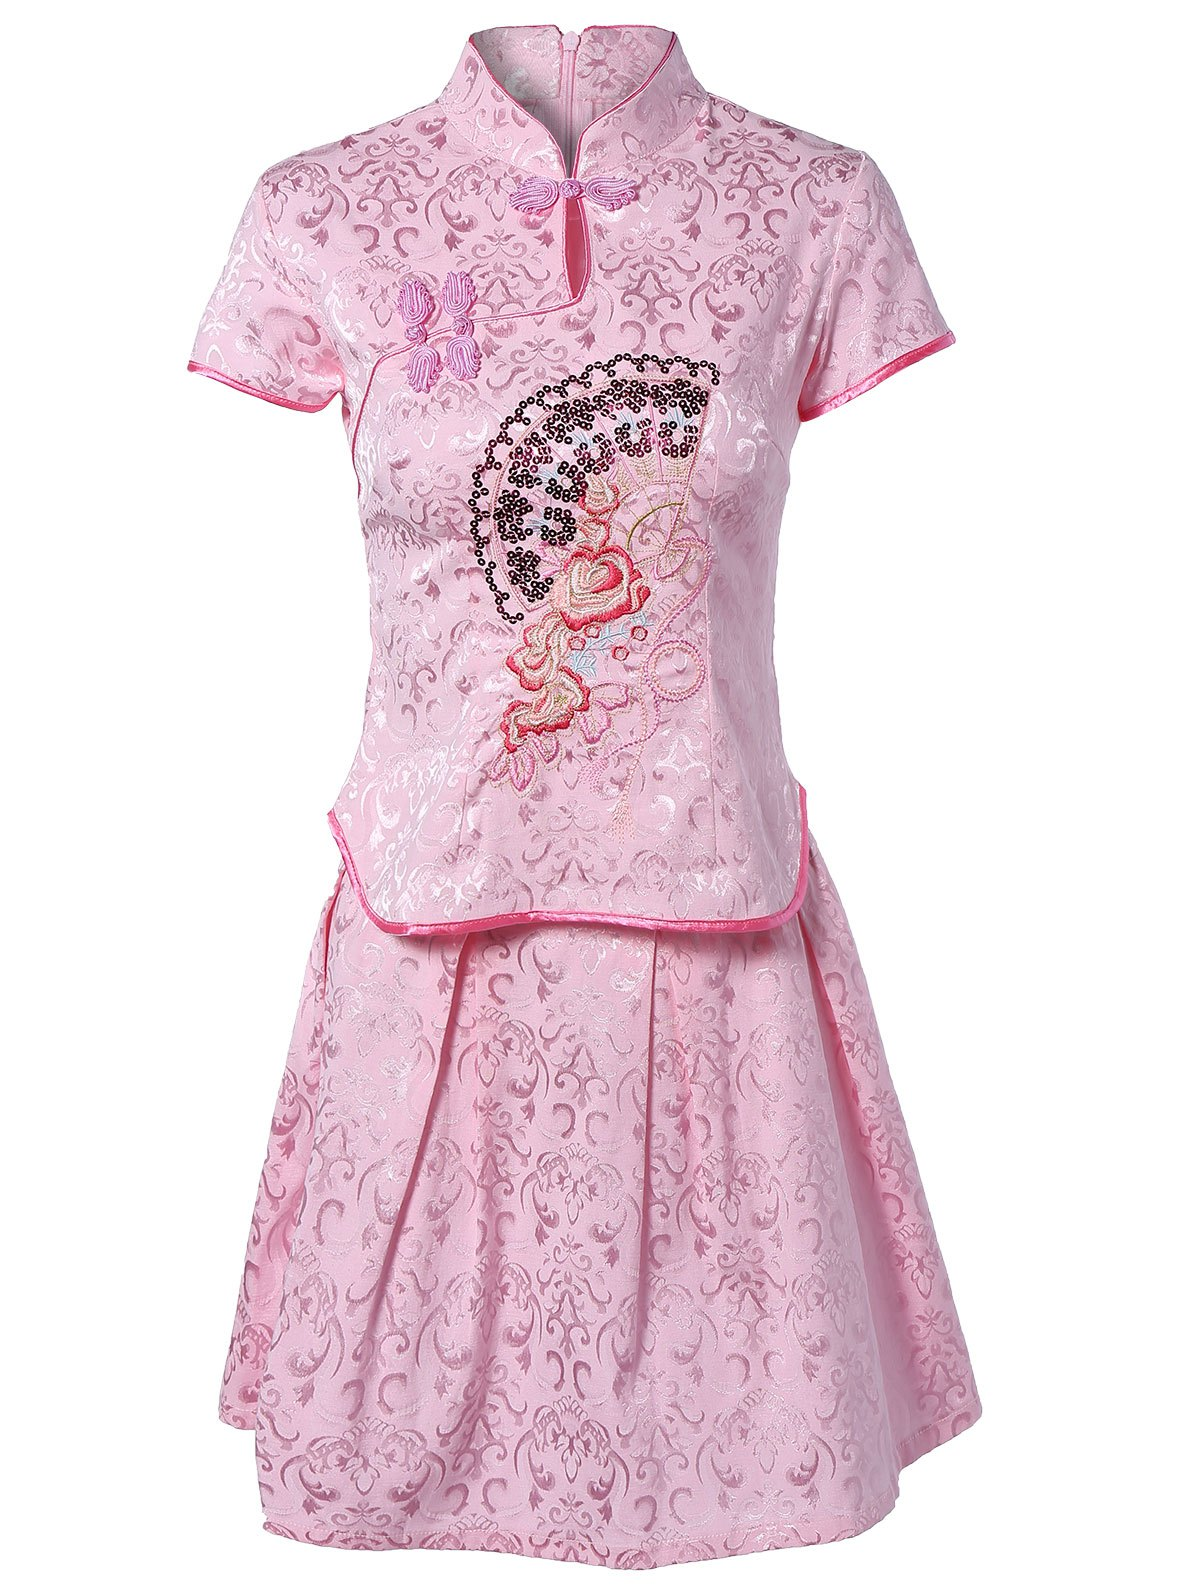 Chinoiserie Embroidered Top and Jacquard Skirt Set For Women